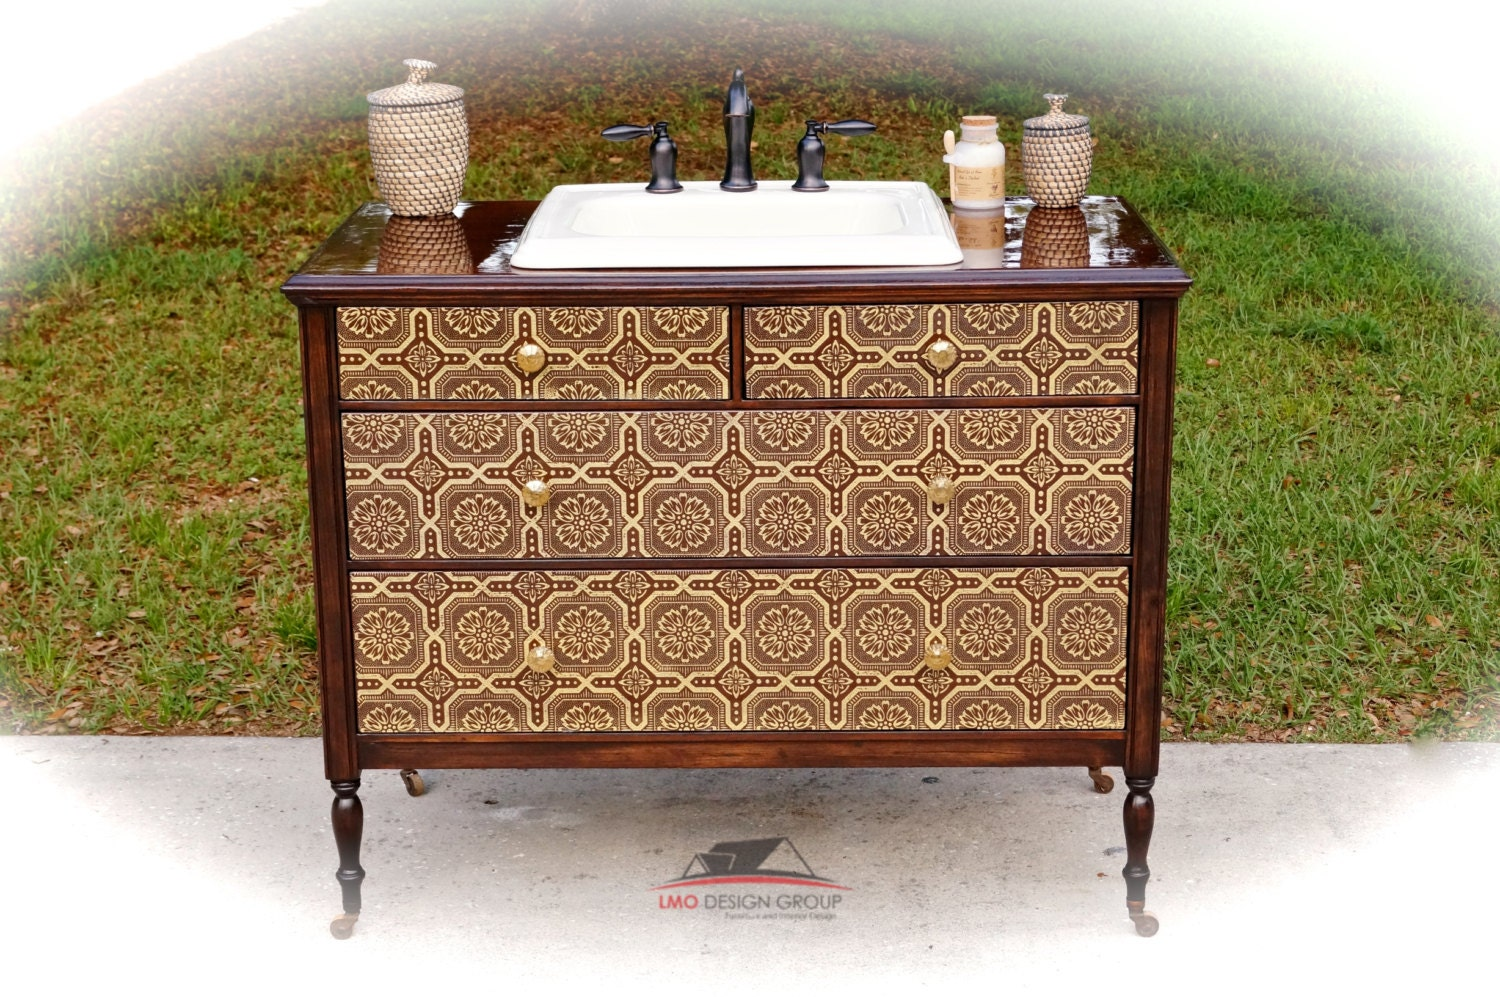 Bathroom Vanity By Lmodesigngroup On Etsy